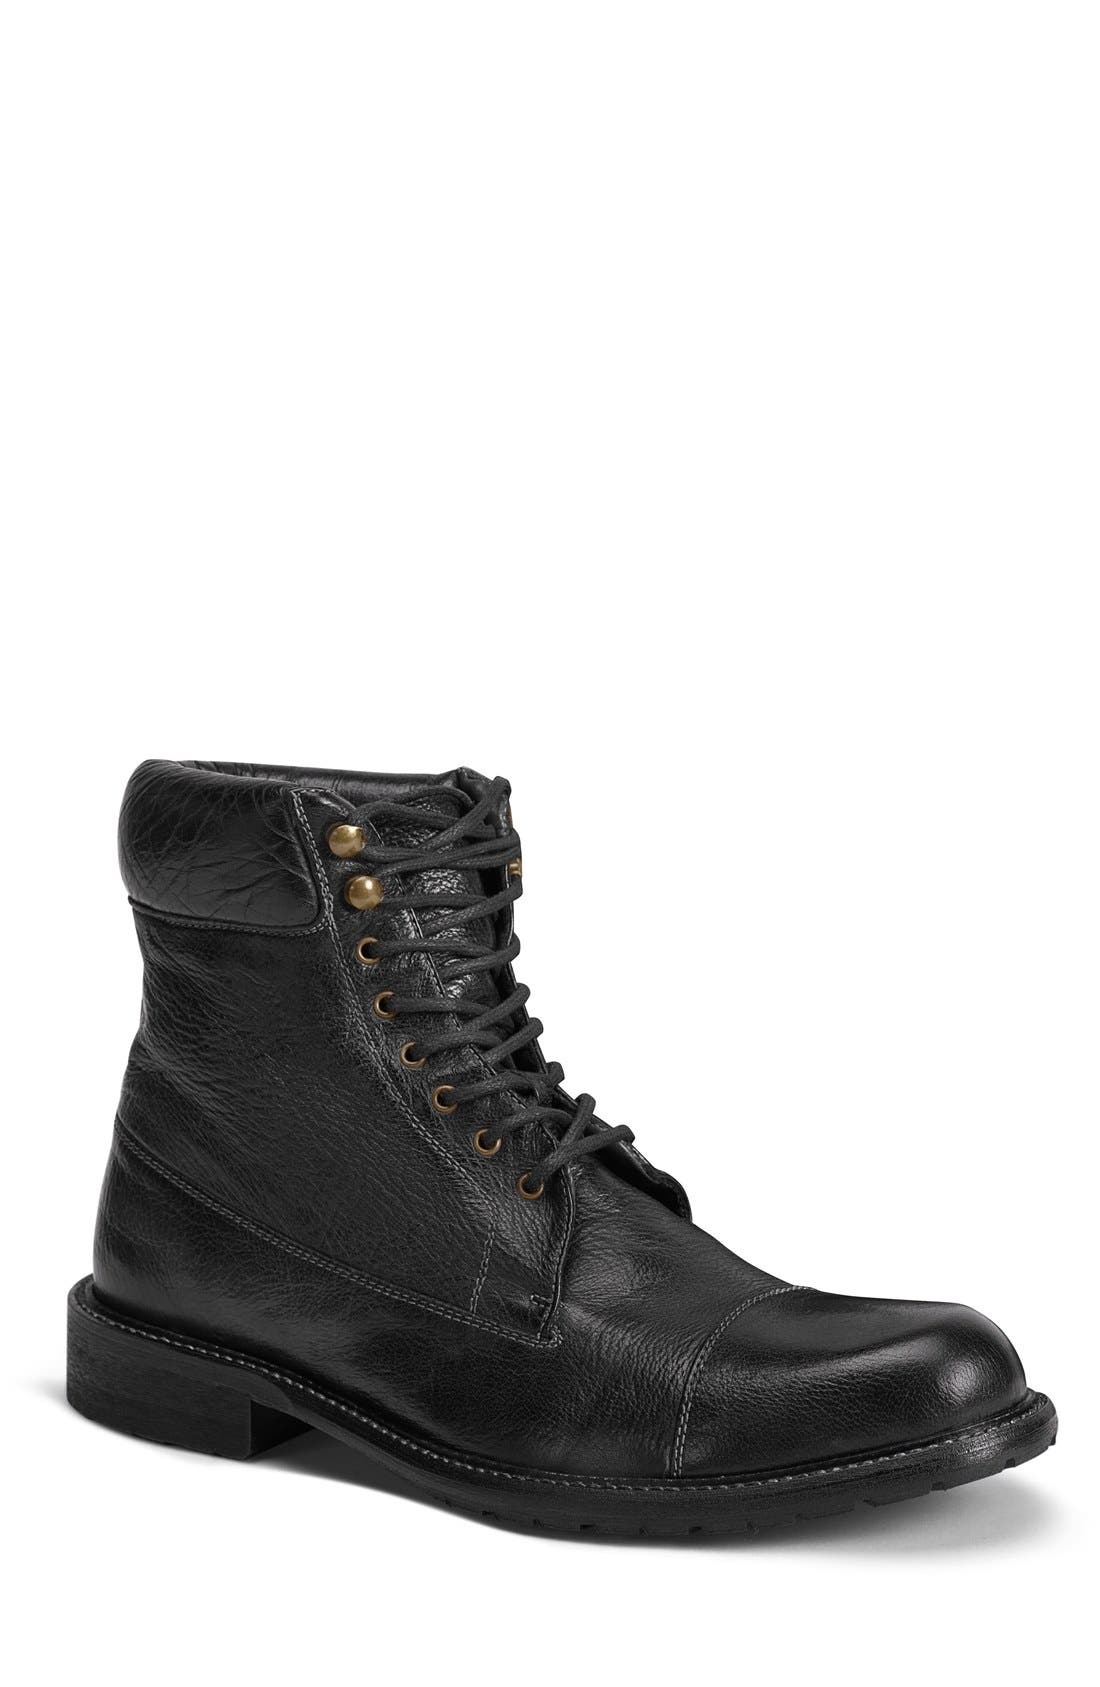 Trask 'Ronan' Cap Toe Boot (Men)